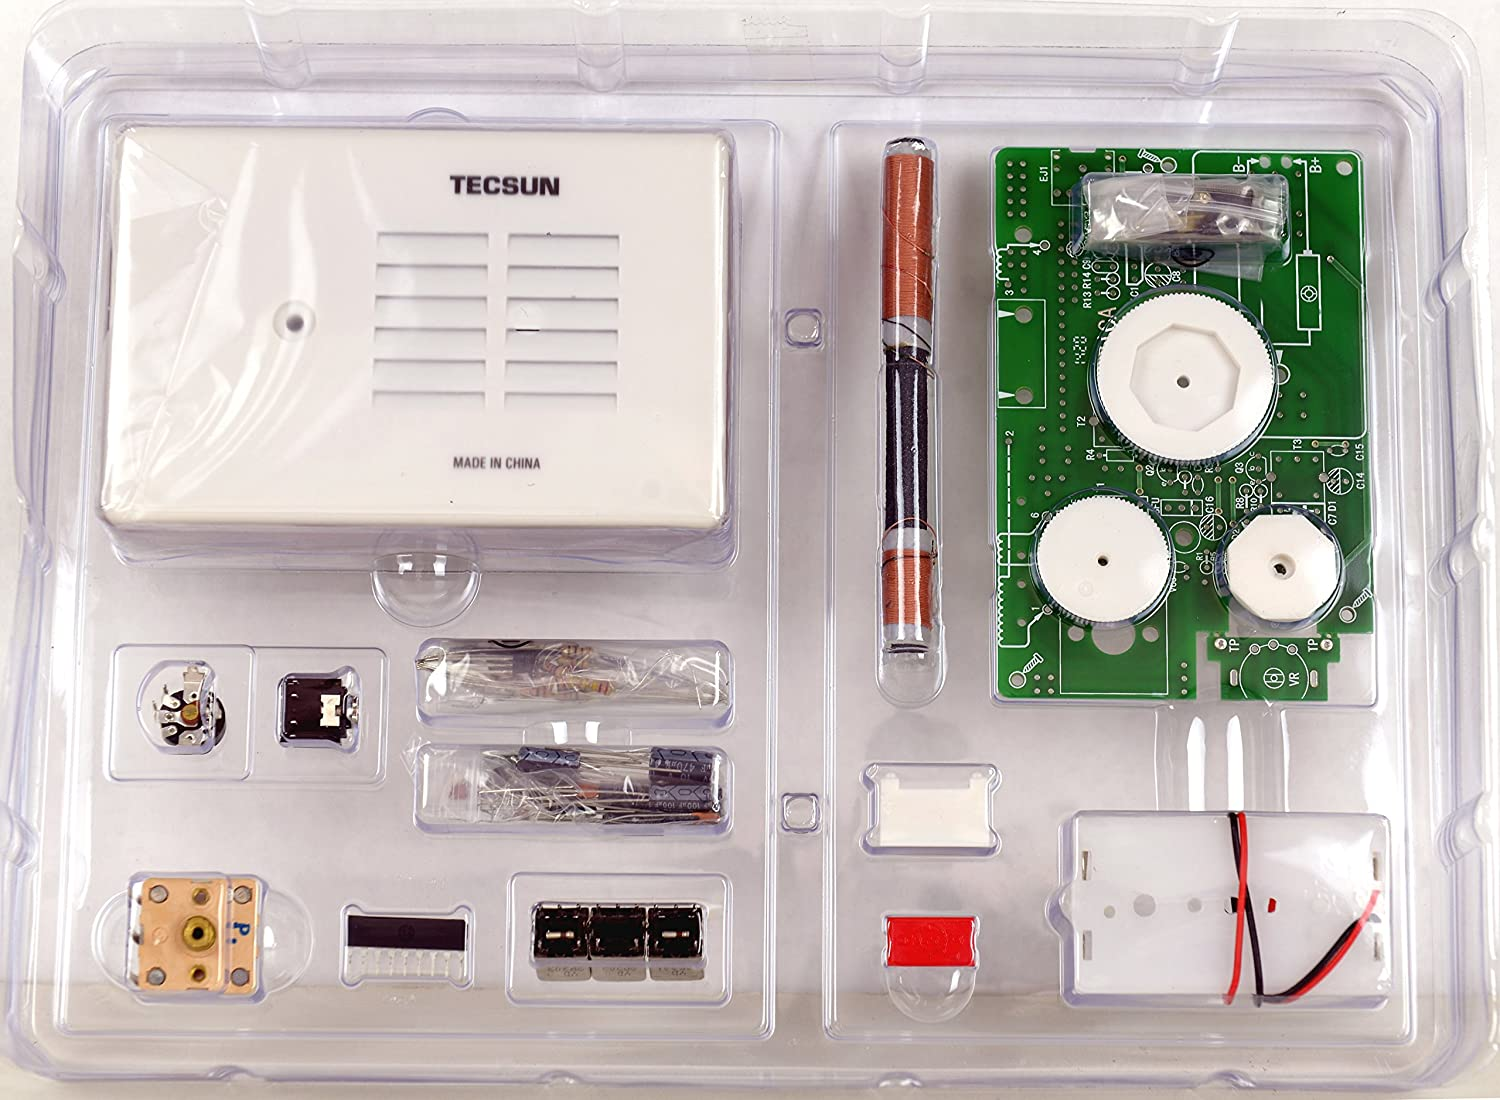 China Digital Fm Receiver Circuit Board Assembly Production Tecsun 2p3 Am Radio Kit Diy For Enthusiasts Built It Into A Case Toys Games